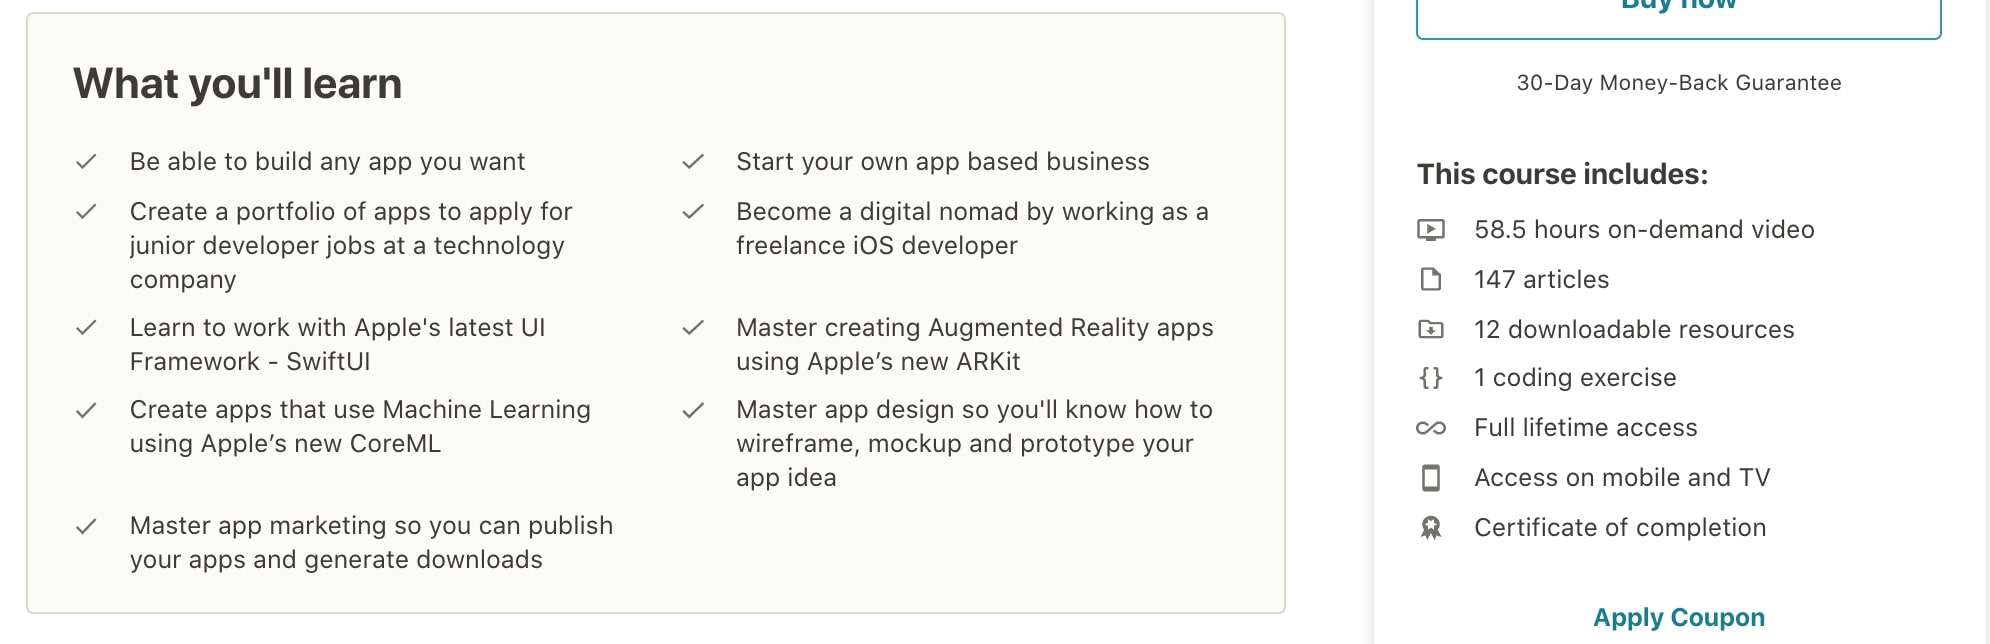 What's Included In a Udemy Course?